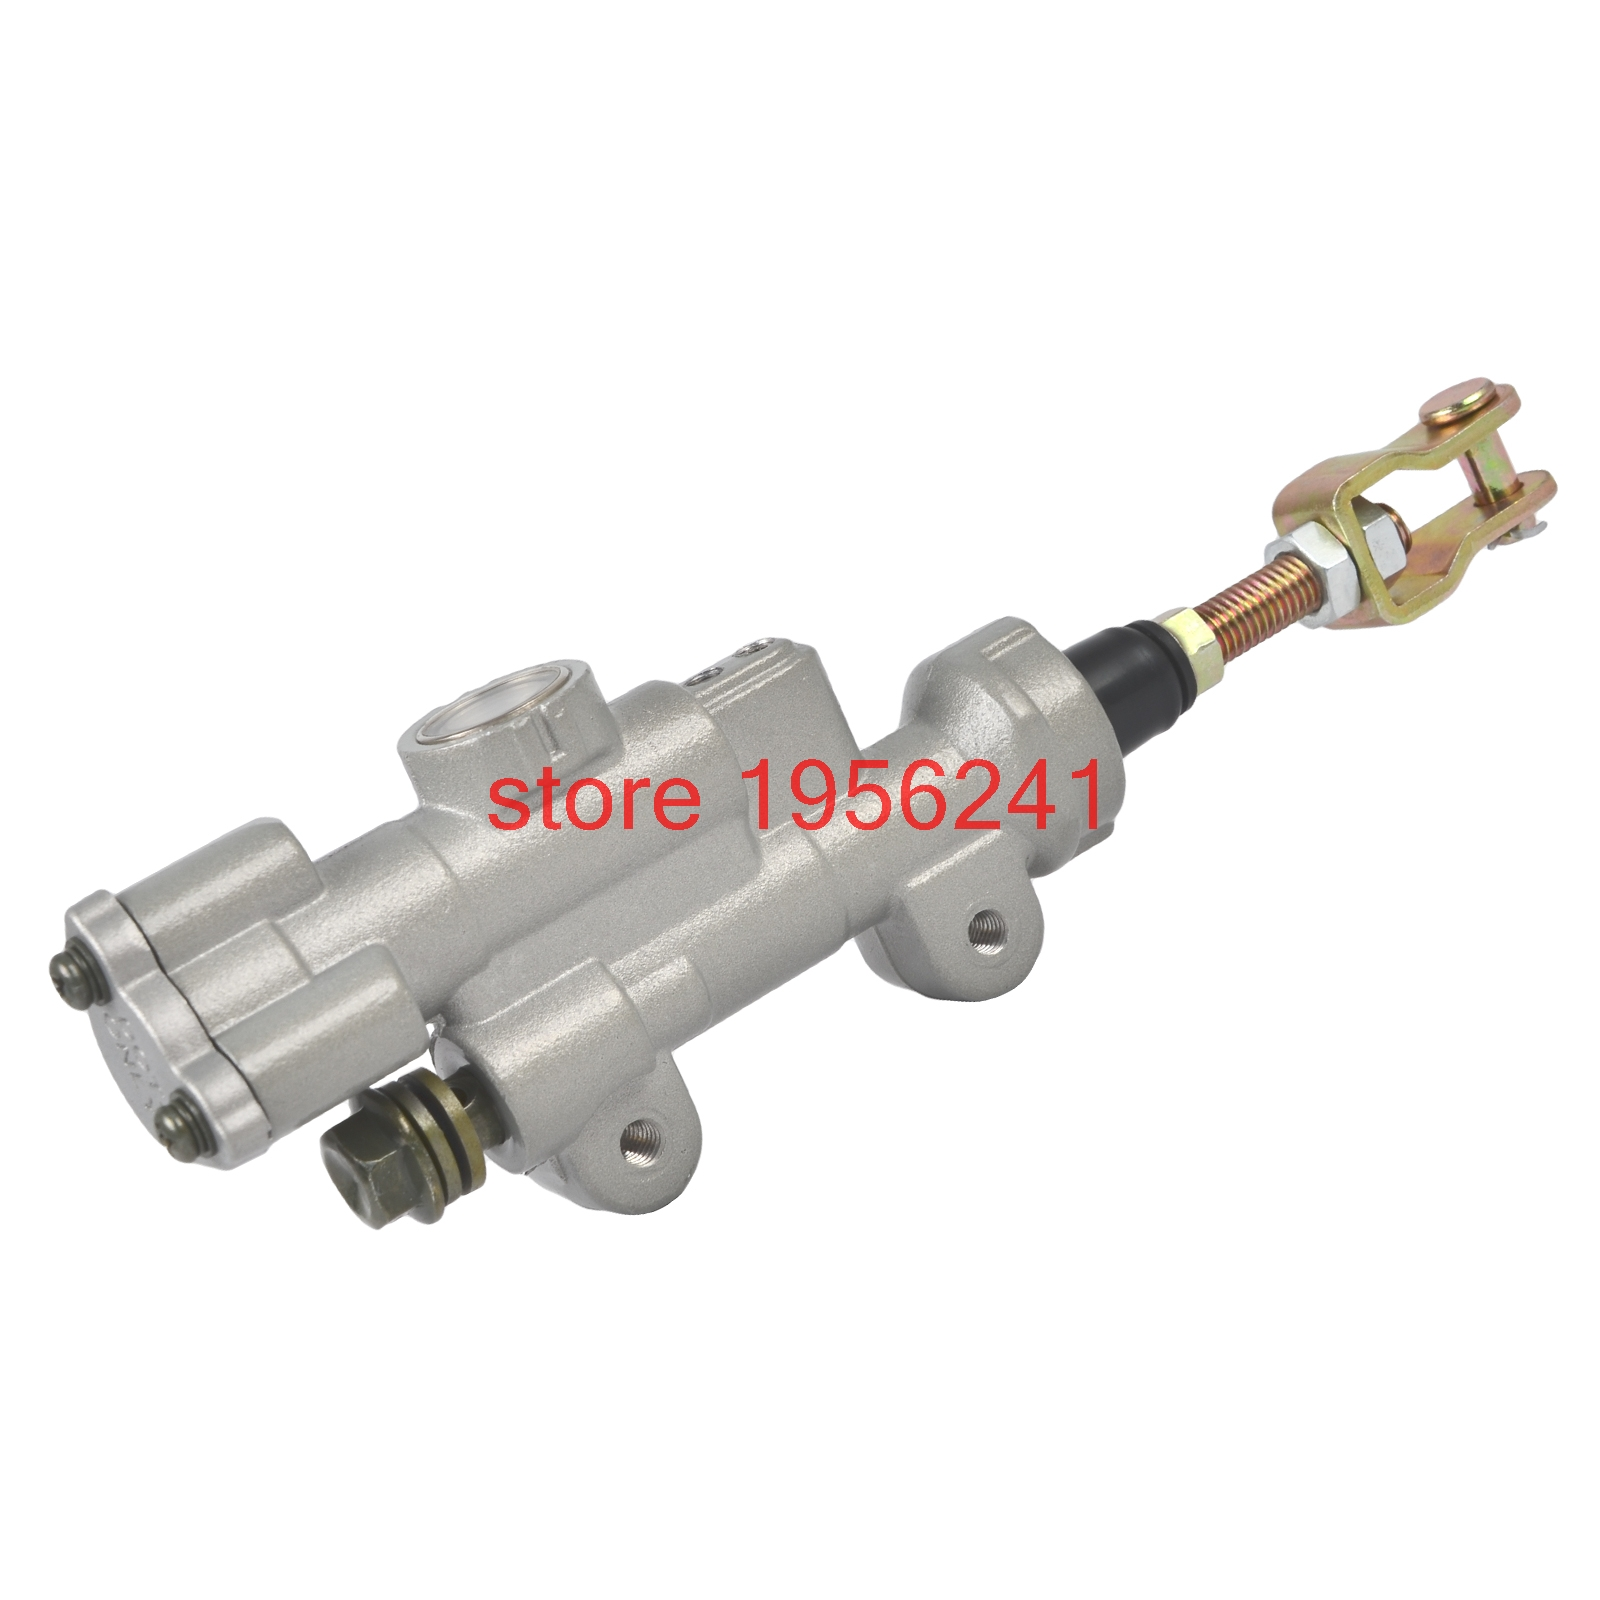 Motorcycle Rear Brake Master Cylinder For Honda CRF450X 2005 - 2015 2006 2007 2008 2010 2012 2014 CRF 450X CRF450 X rear brake braking master cylinder for polaris trail boss 325 00 02 330 03 09trail blazer 250 2001 2006 330 2008 2013 400 2003